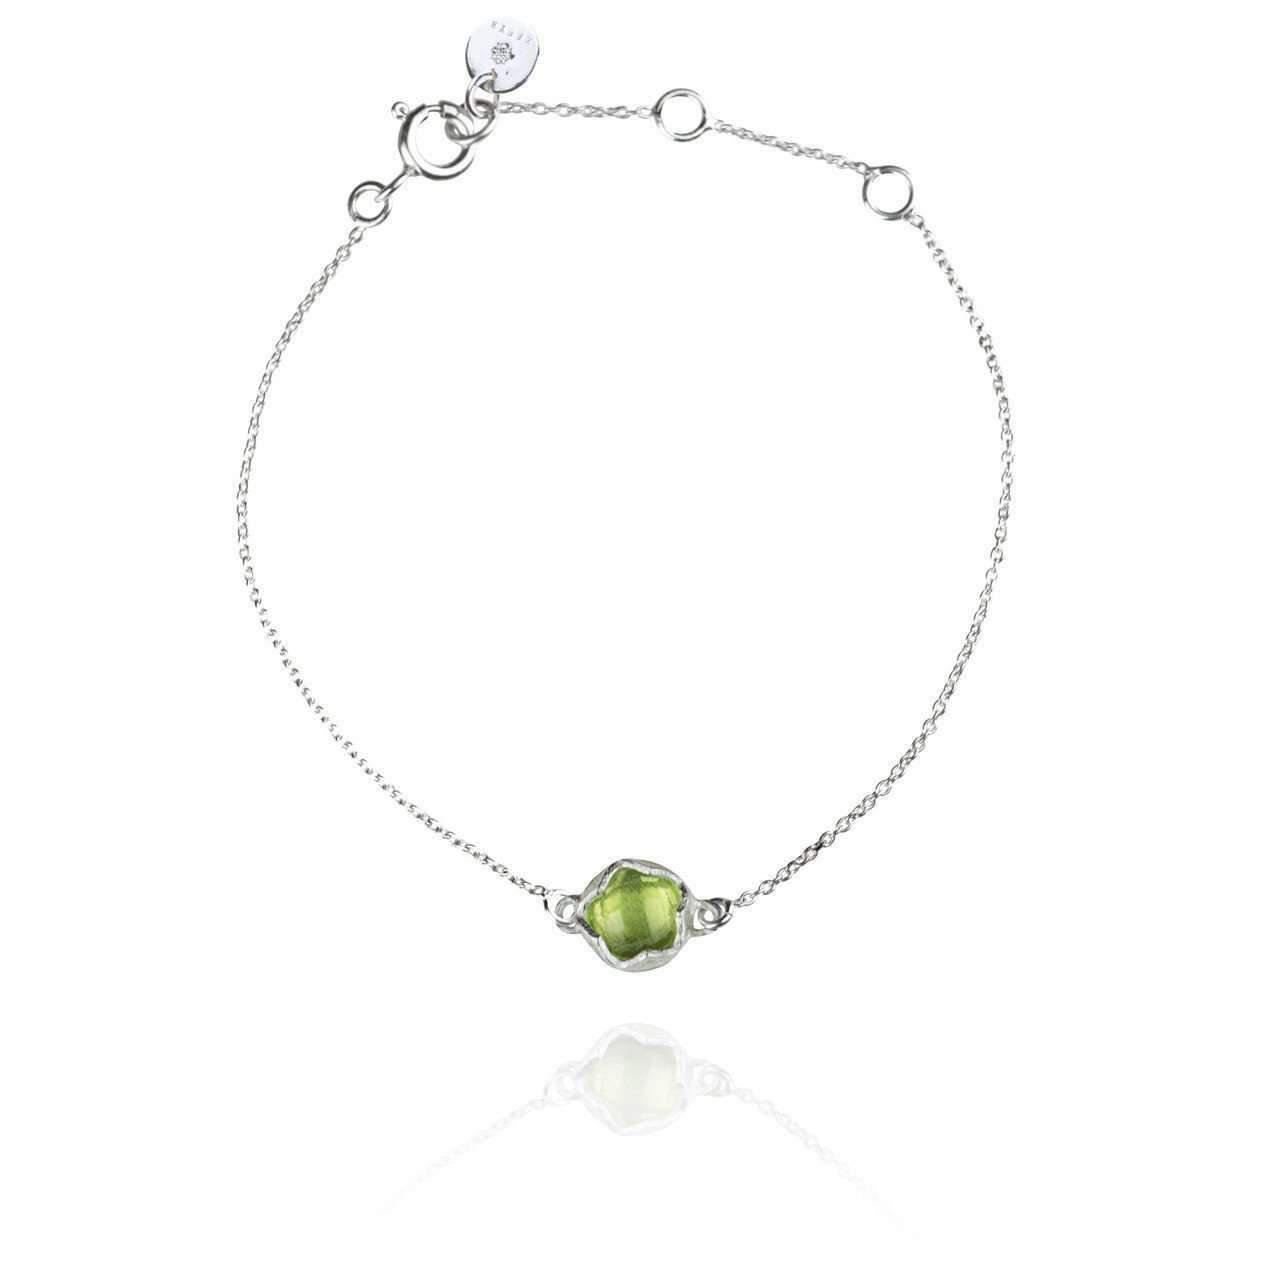 Zefyr Dosha Necklace Sterling Silver With Peridot EFYaXnF